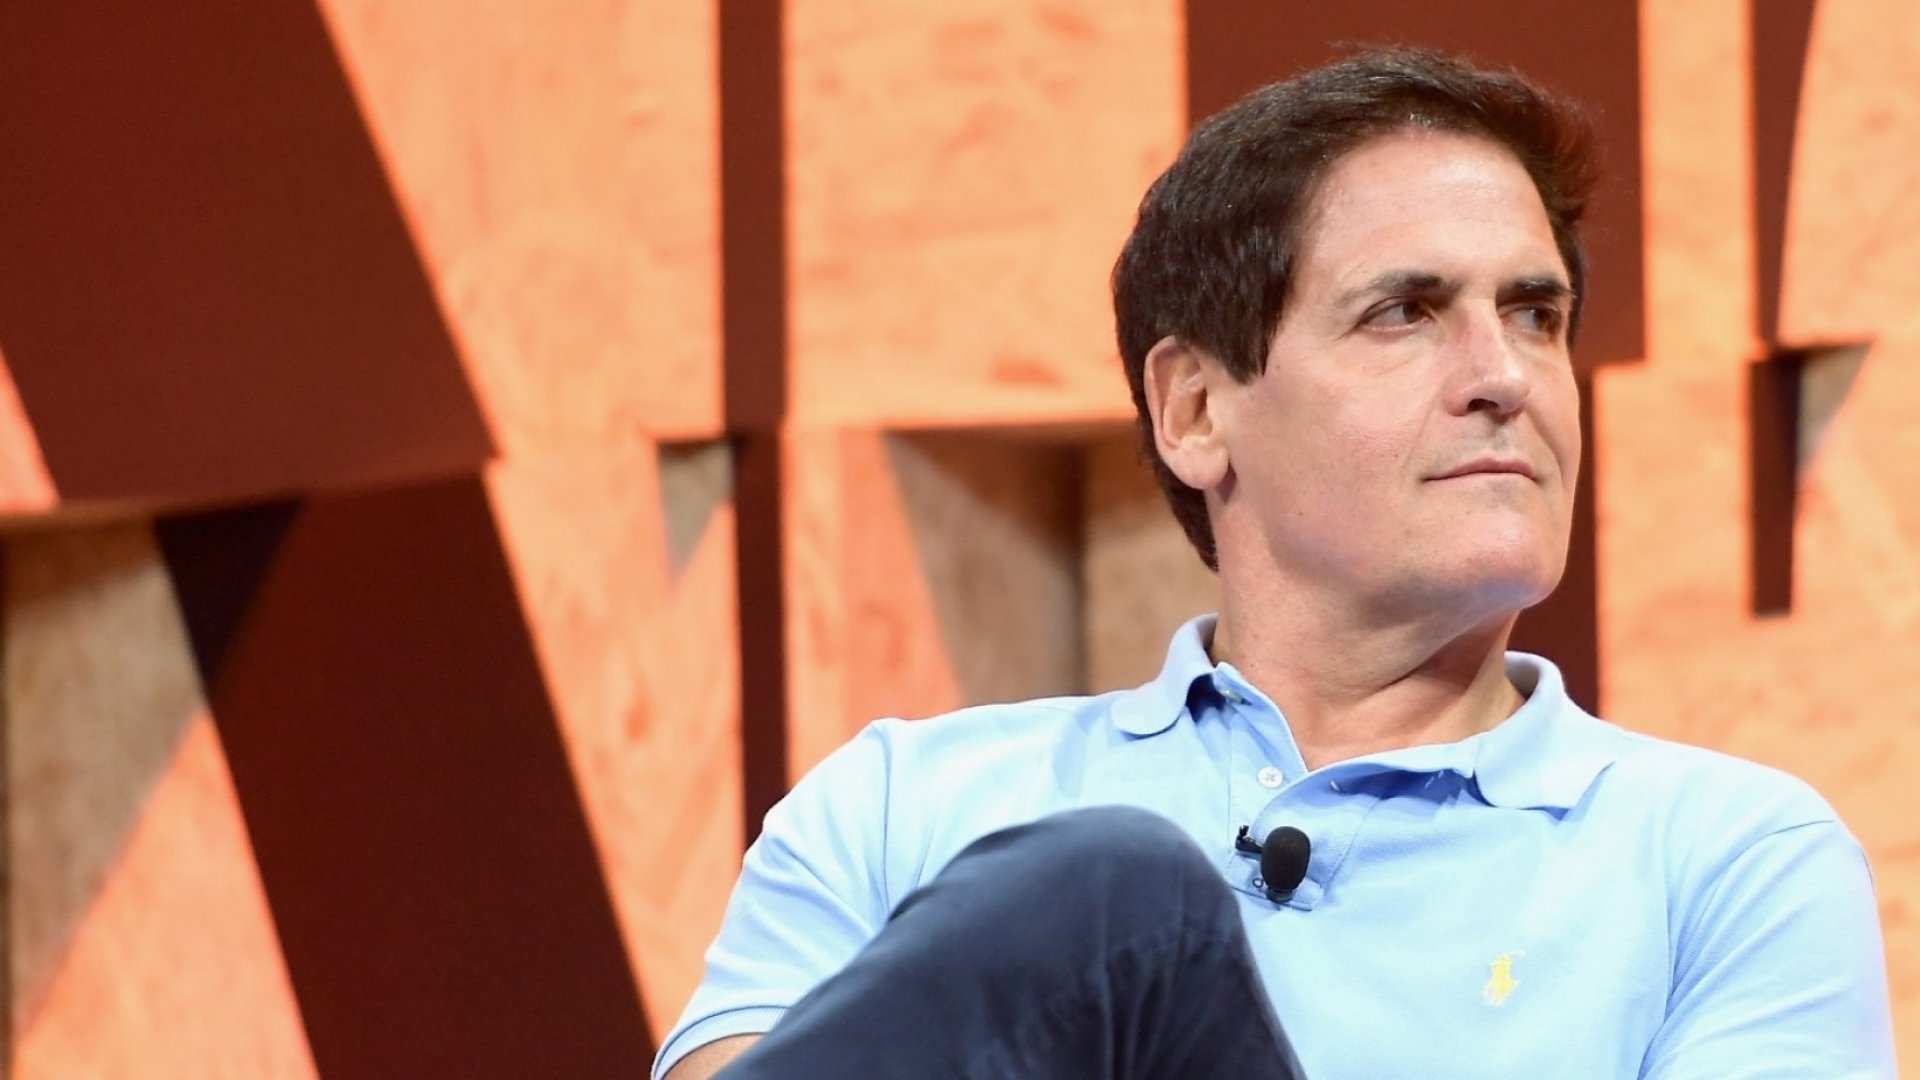 In 1 Counterintuitive Sentence, Mark Cuban Just Gave the Secret to Rapidly Growing Any Business